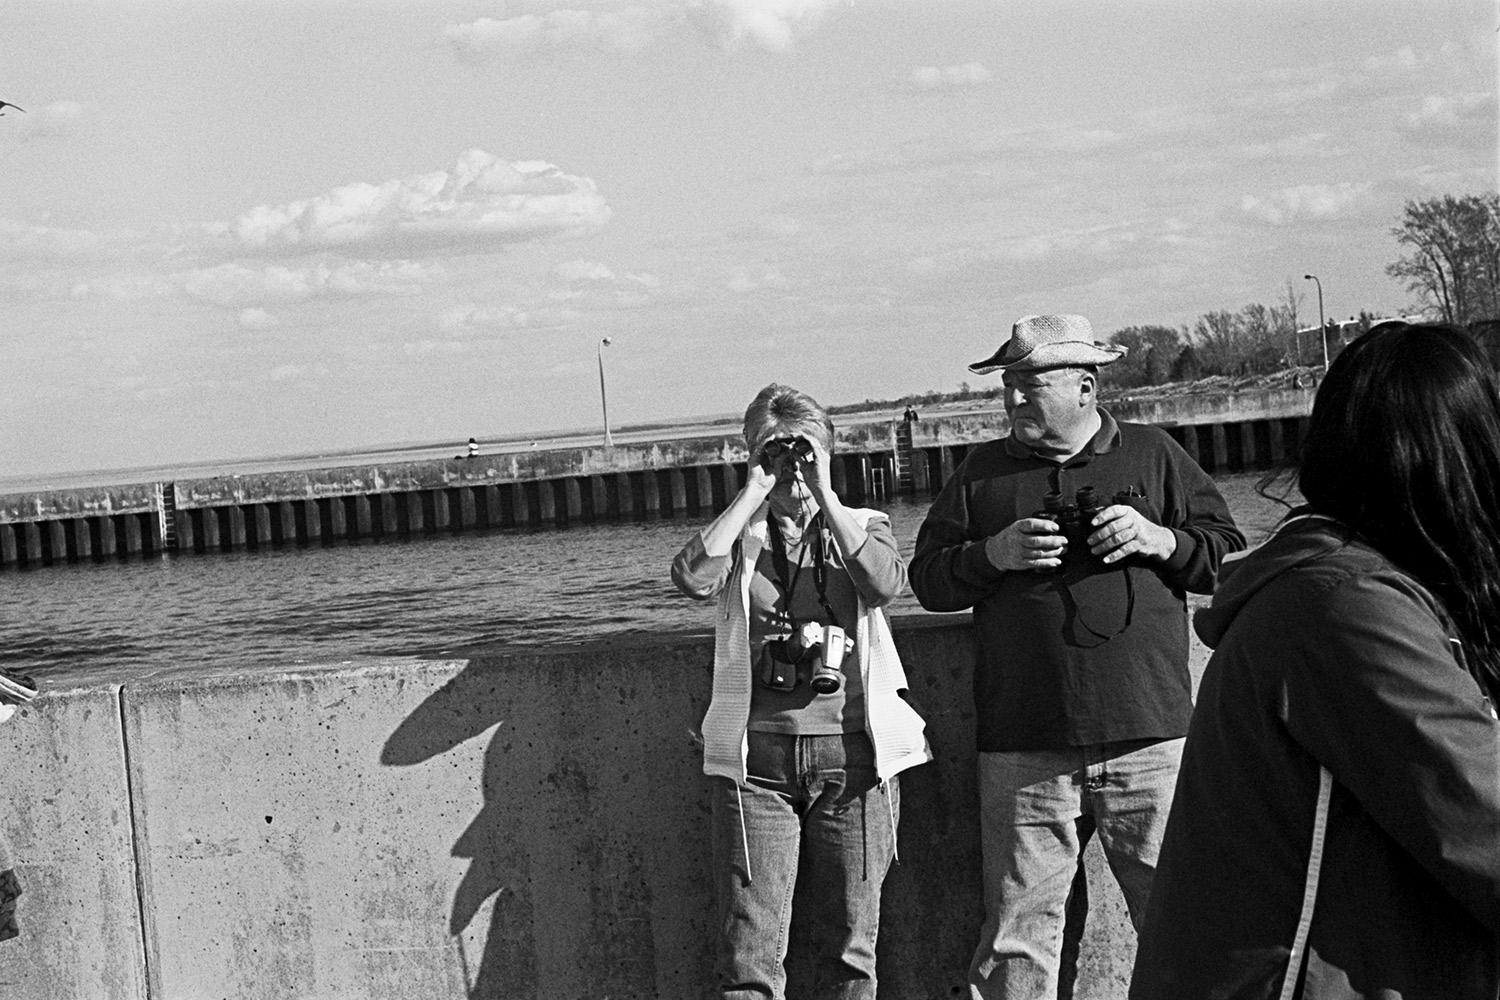 Woman With Binoculars, Duluth, Minnesota, May 2008